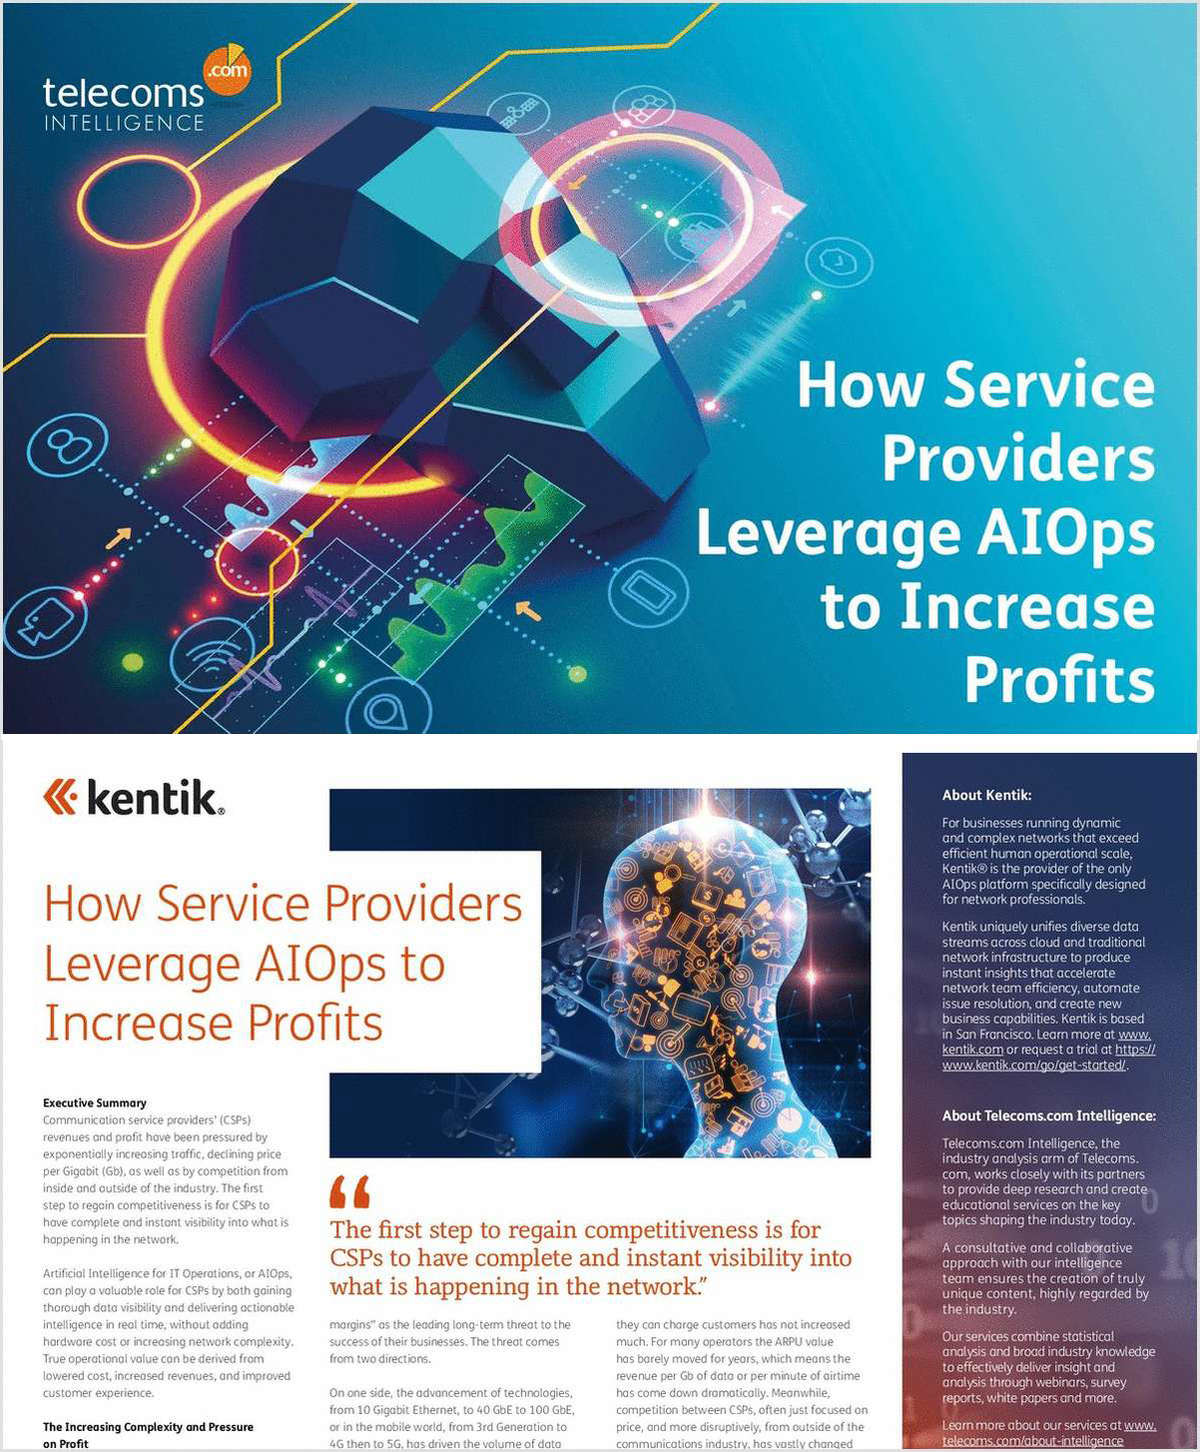 How Network Service Providers Leverage AIOps to Increase Profits